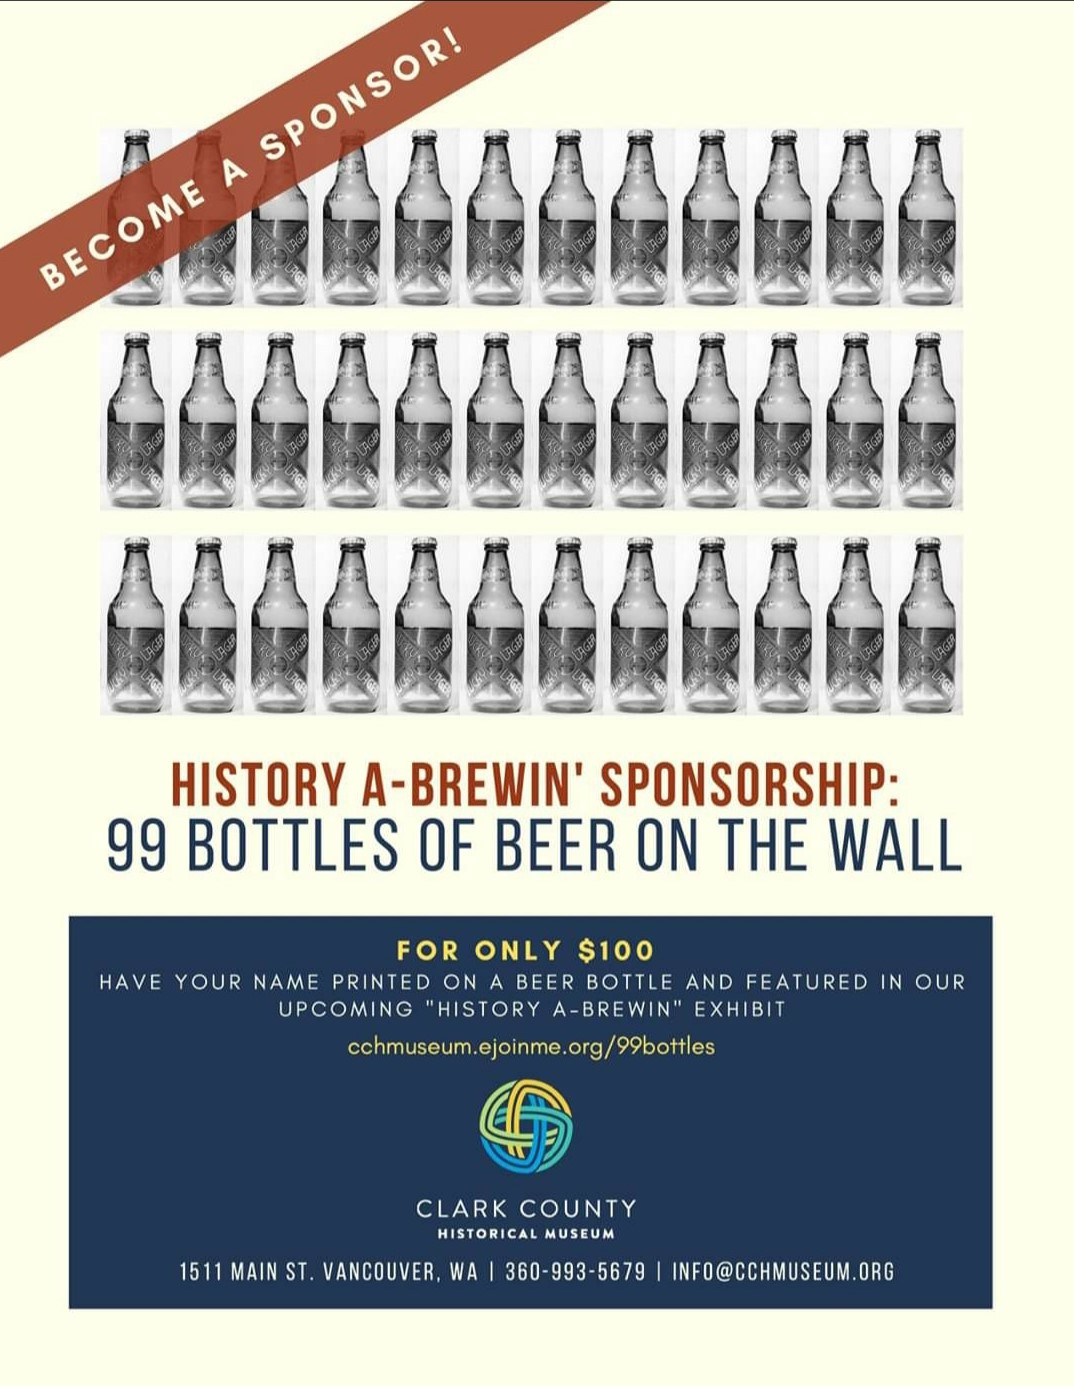 History on Tap Sponsorship digital poster, three rows of bottled beer with blue box and text at bottom